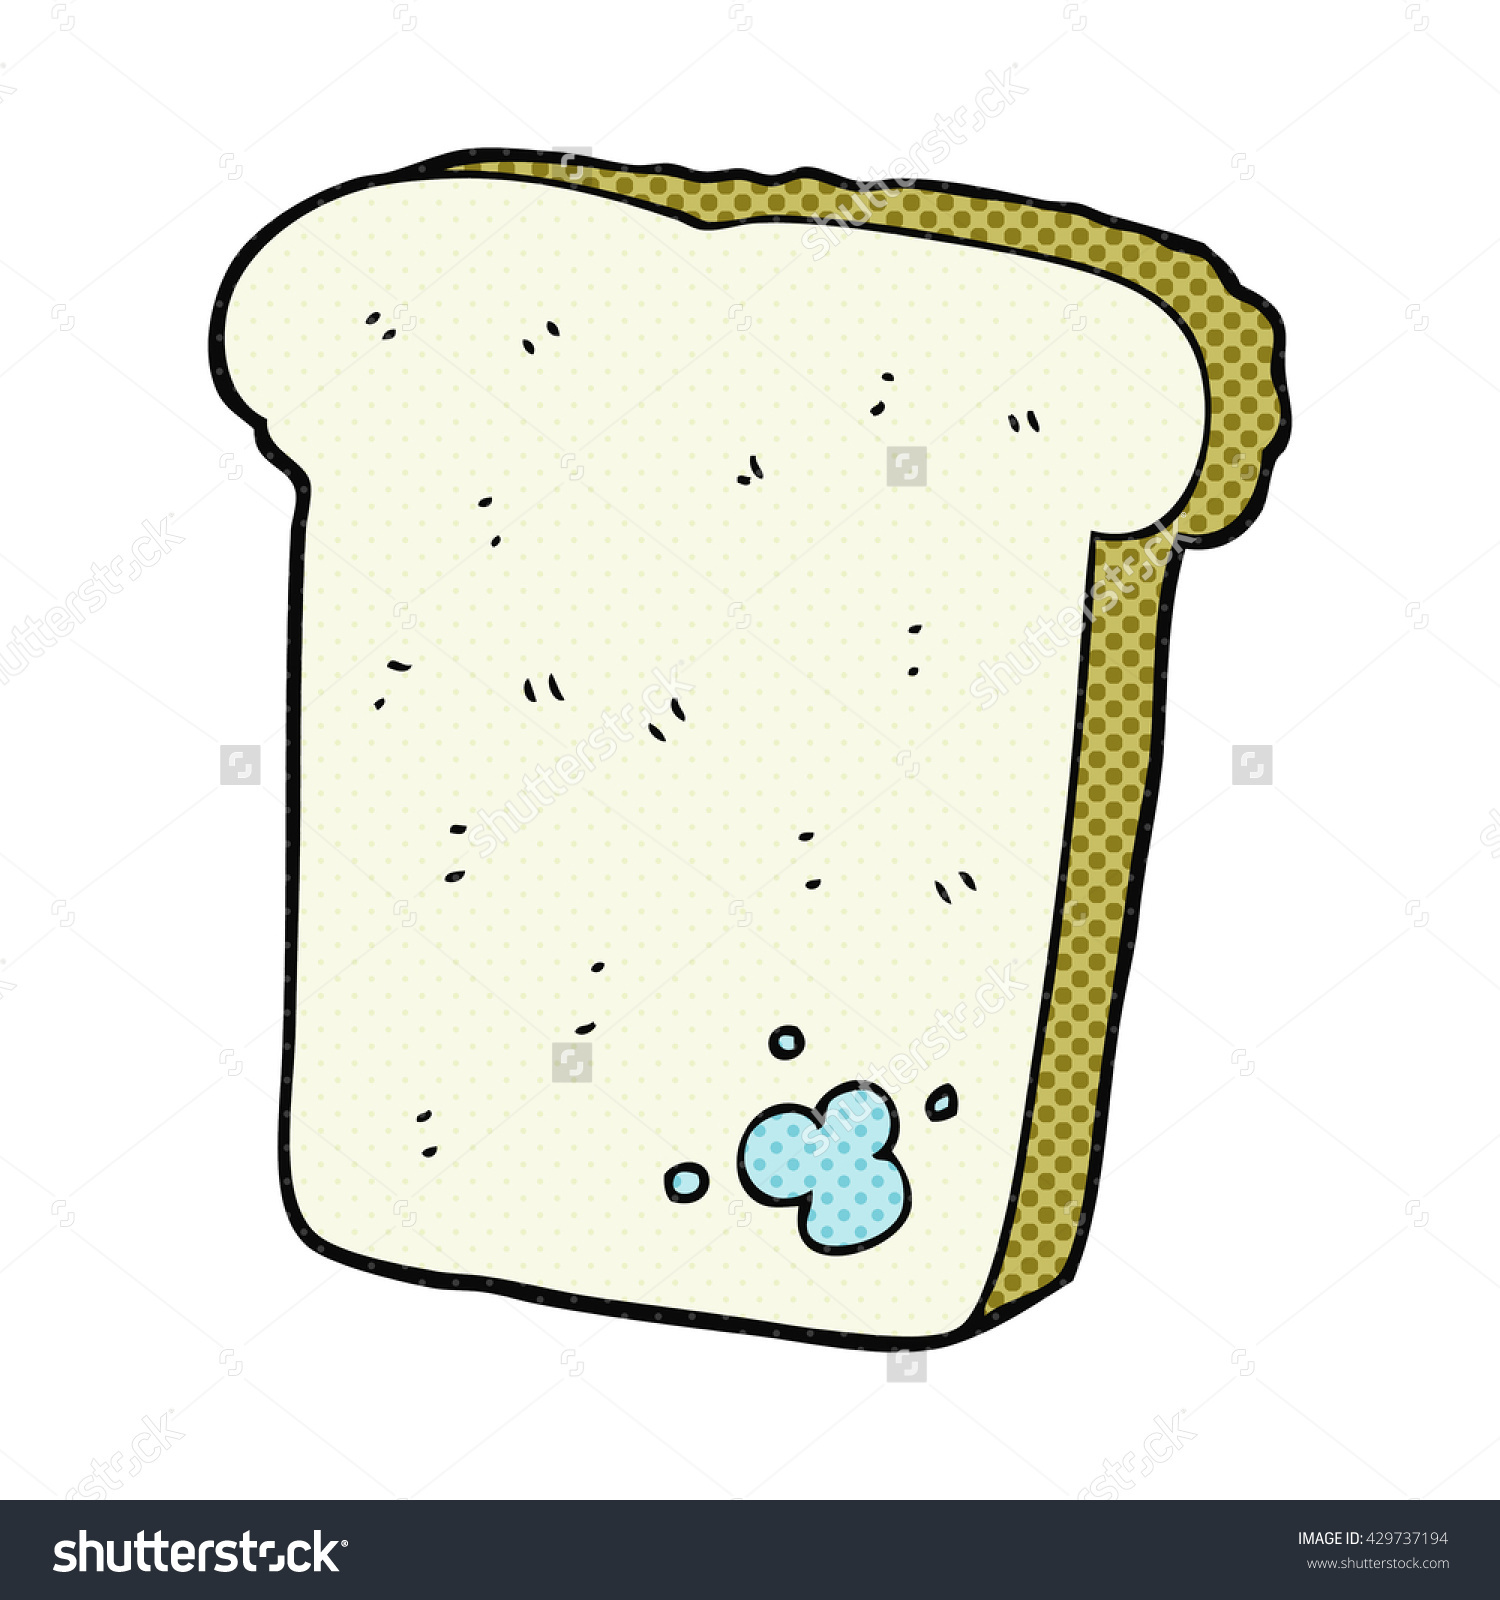 Freehand Drawn Cartoon Mouldy Bread Stock Vector 429737194.